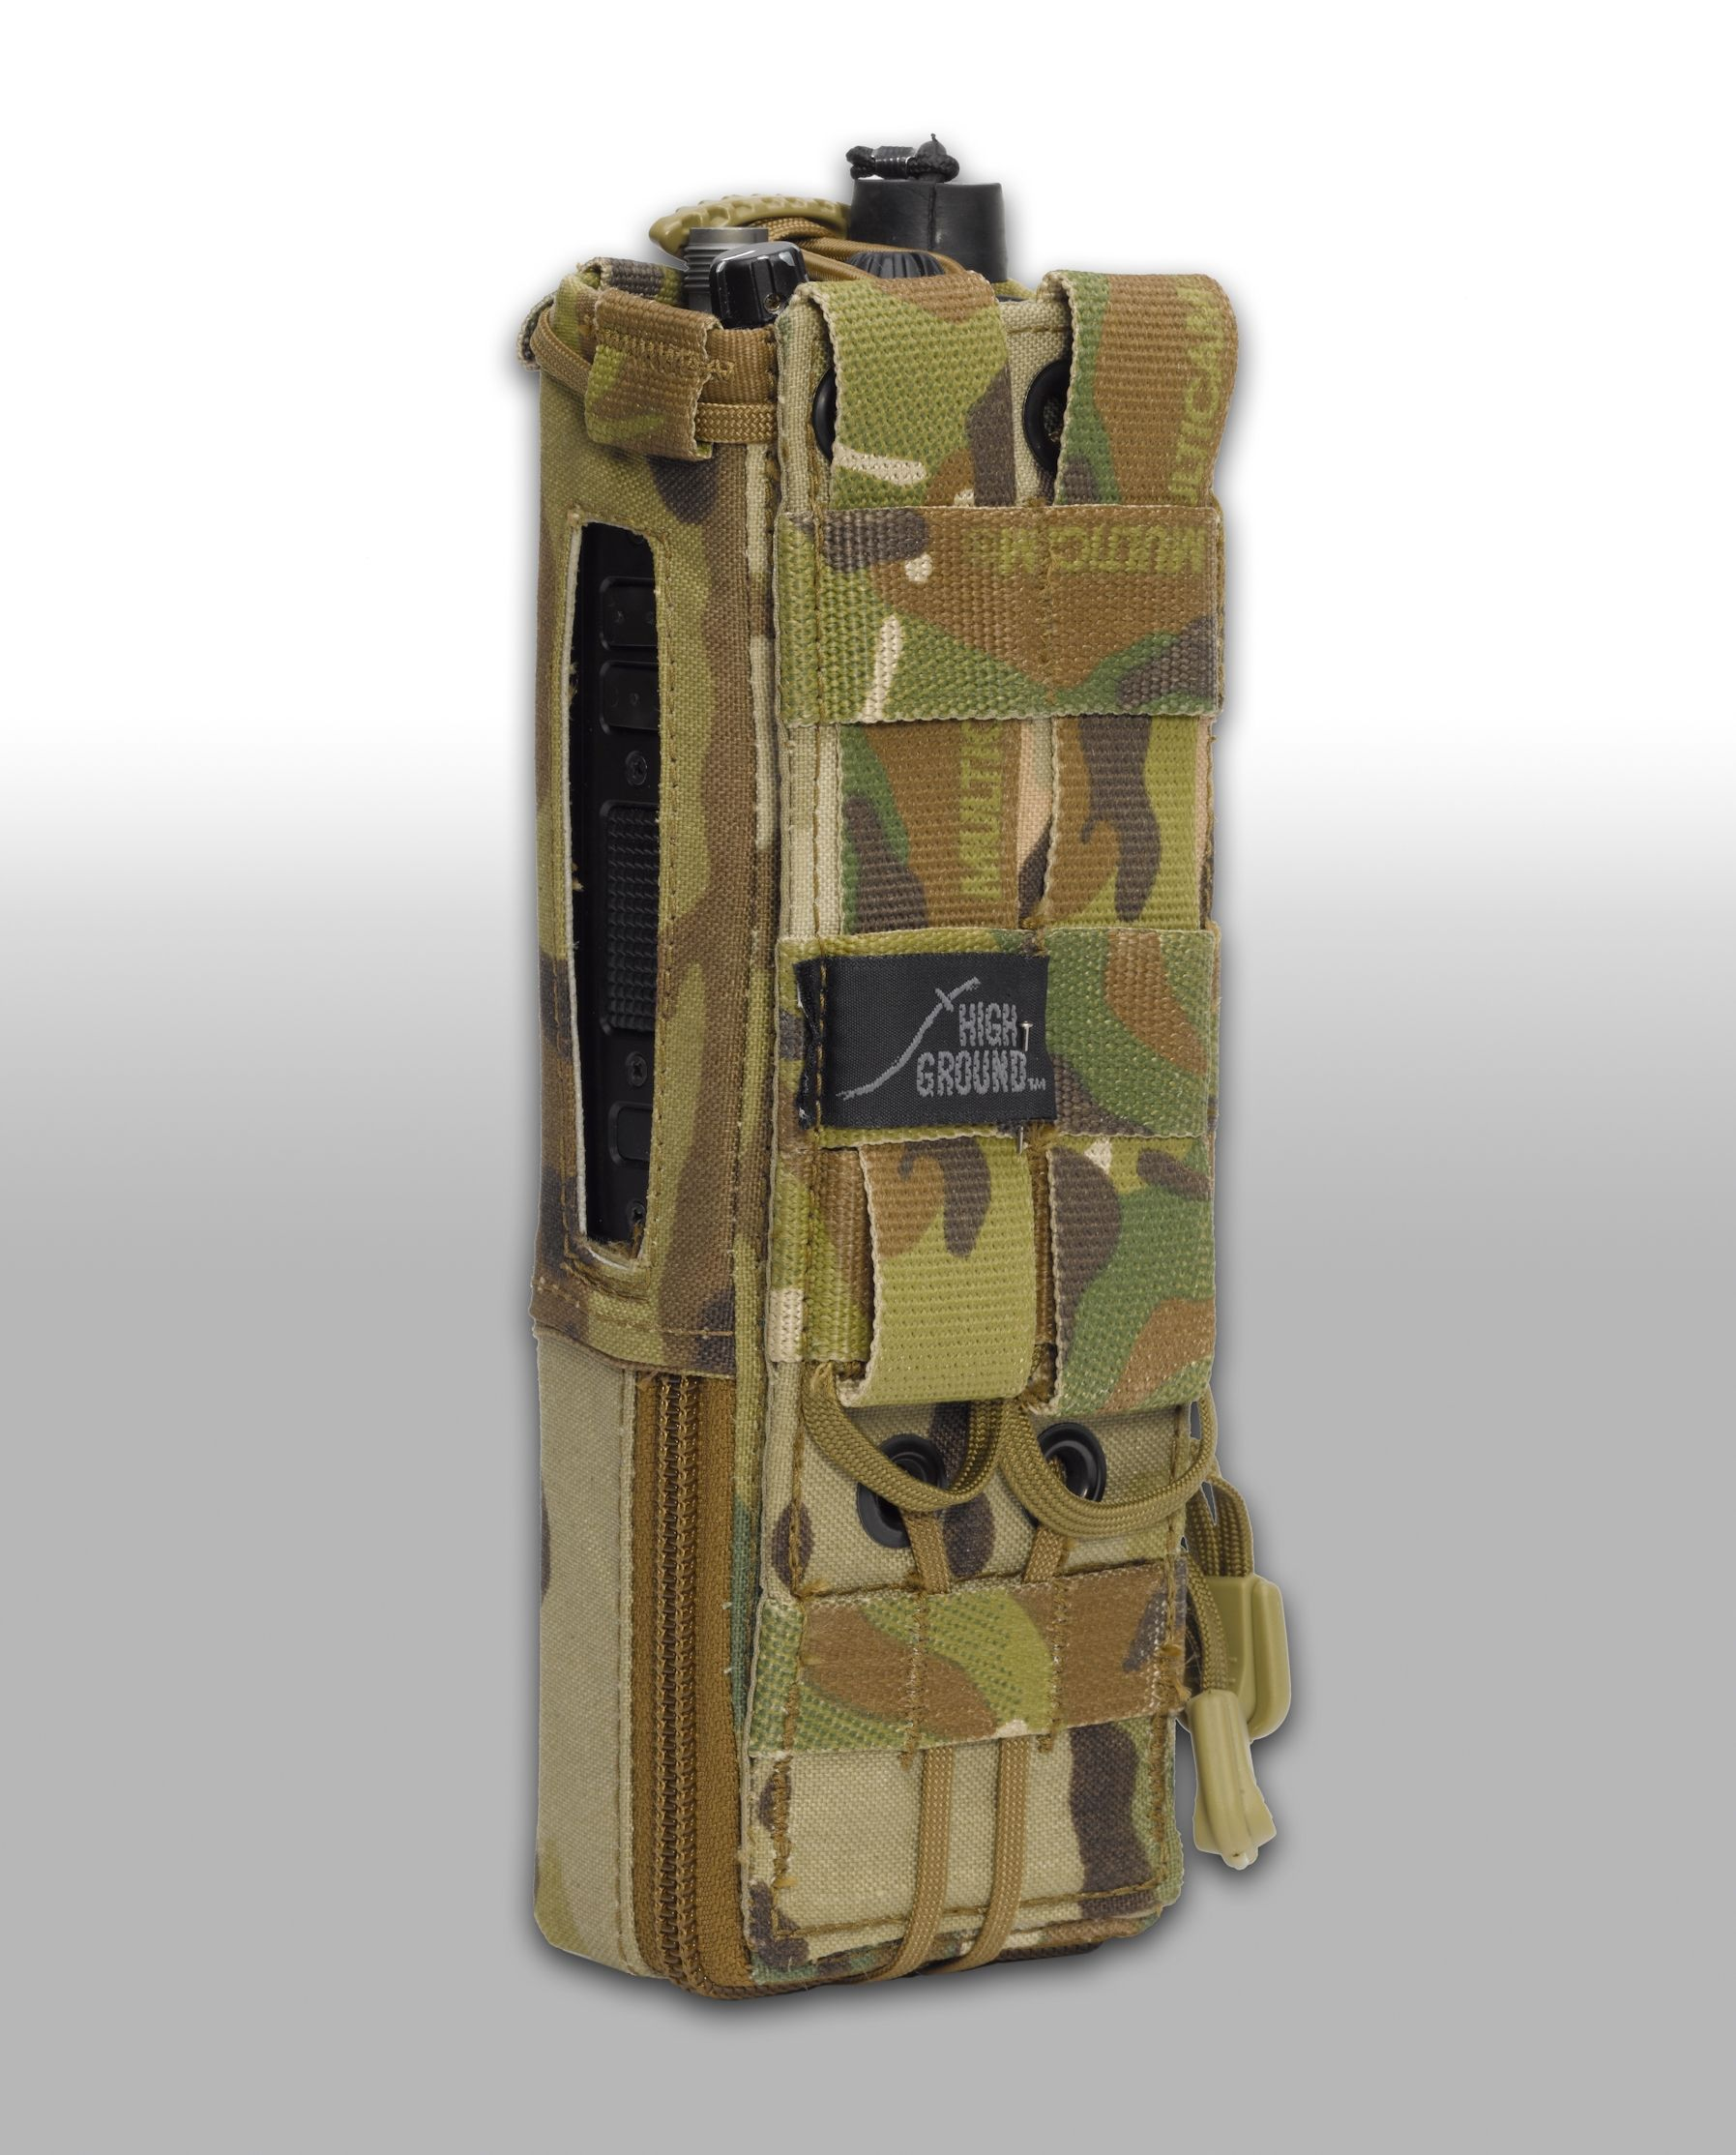 High Ground Gear Single Handed Drop Down Prc 152 Pouch